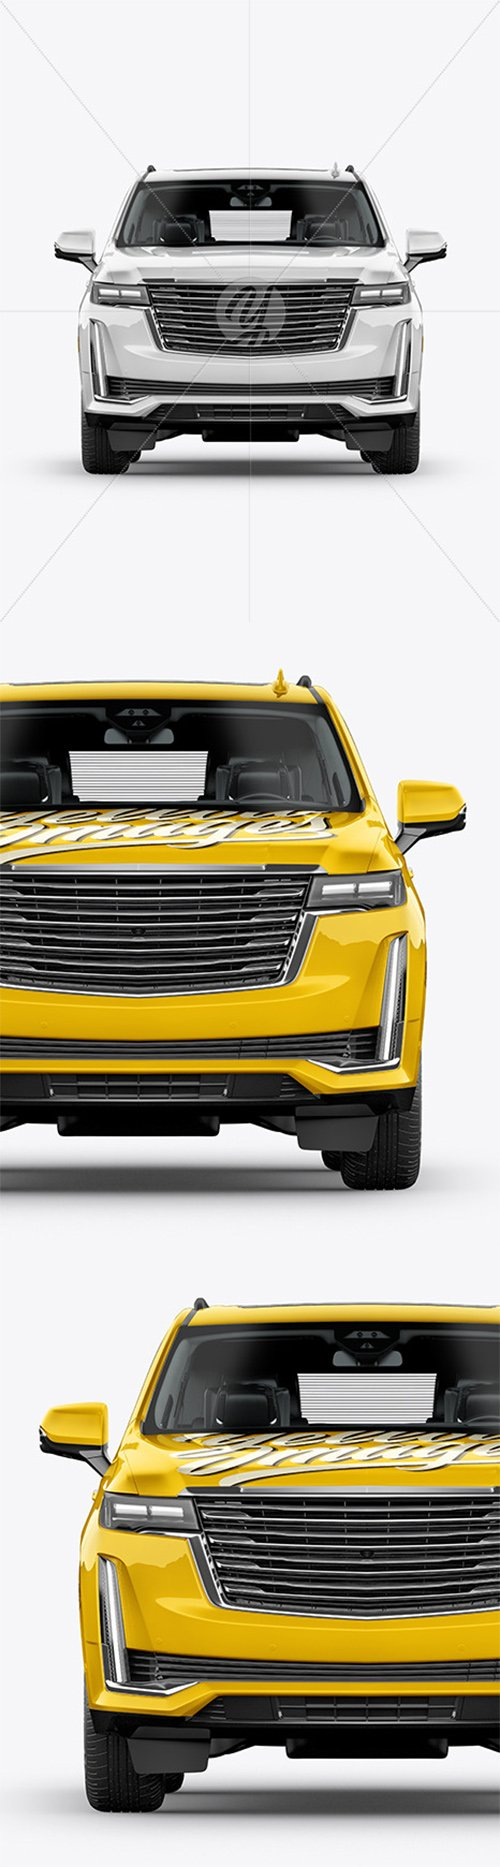 Luxury SUV Mockup - Front View 62293